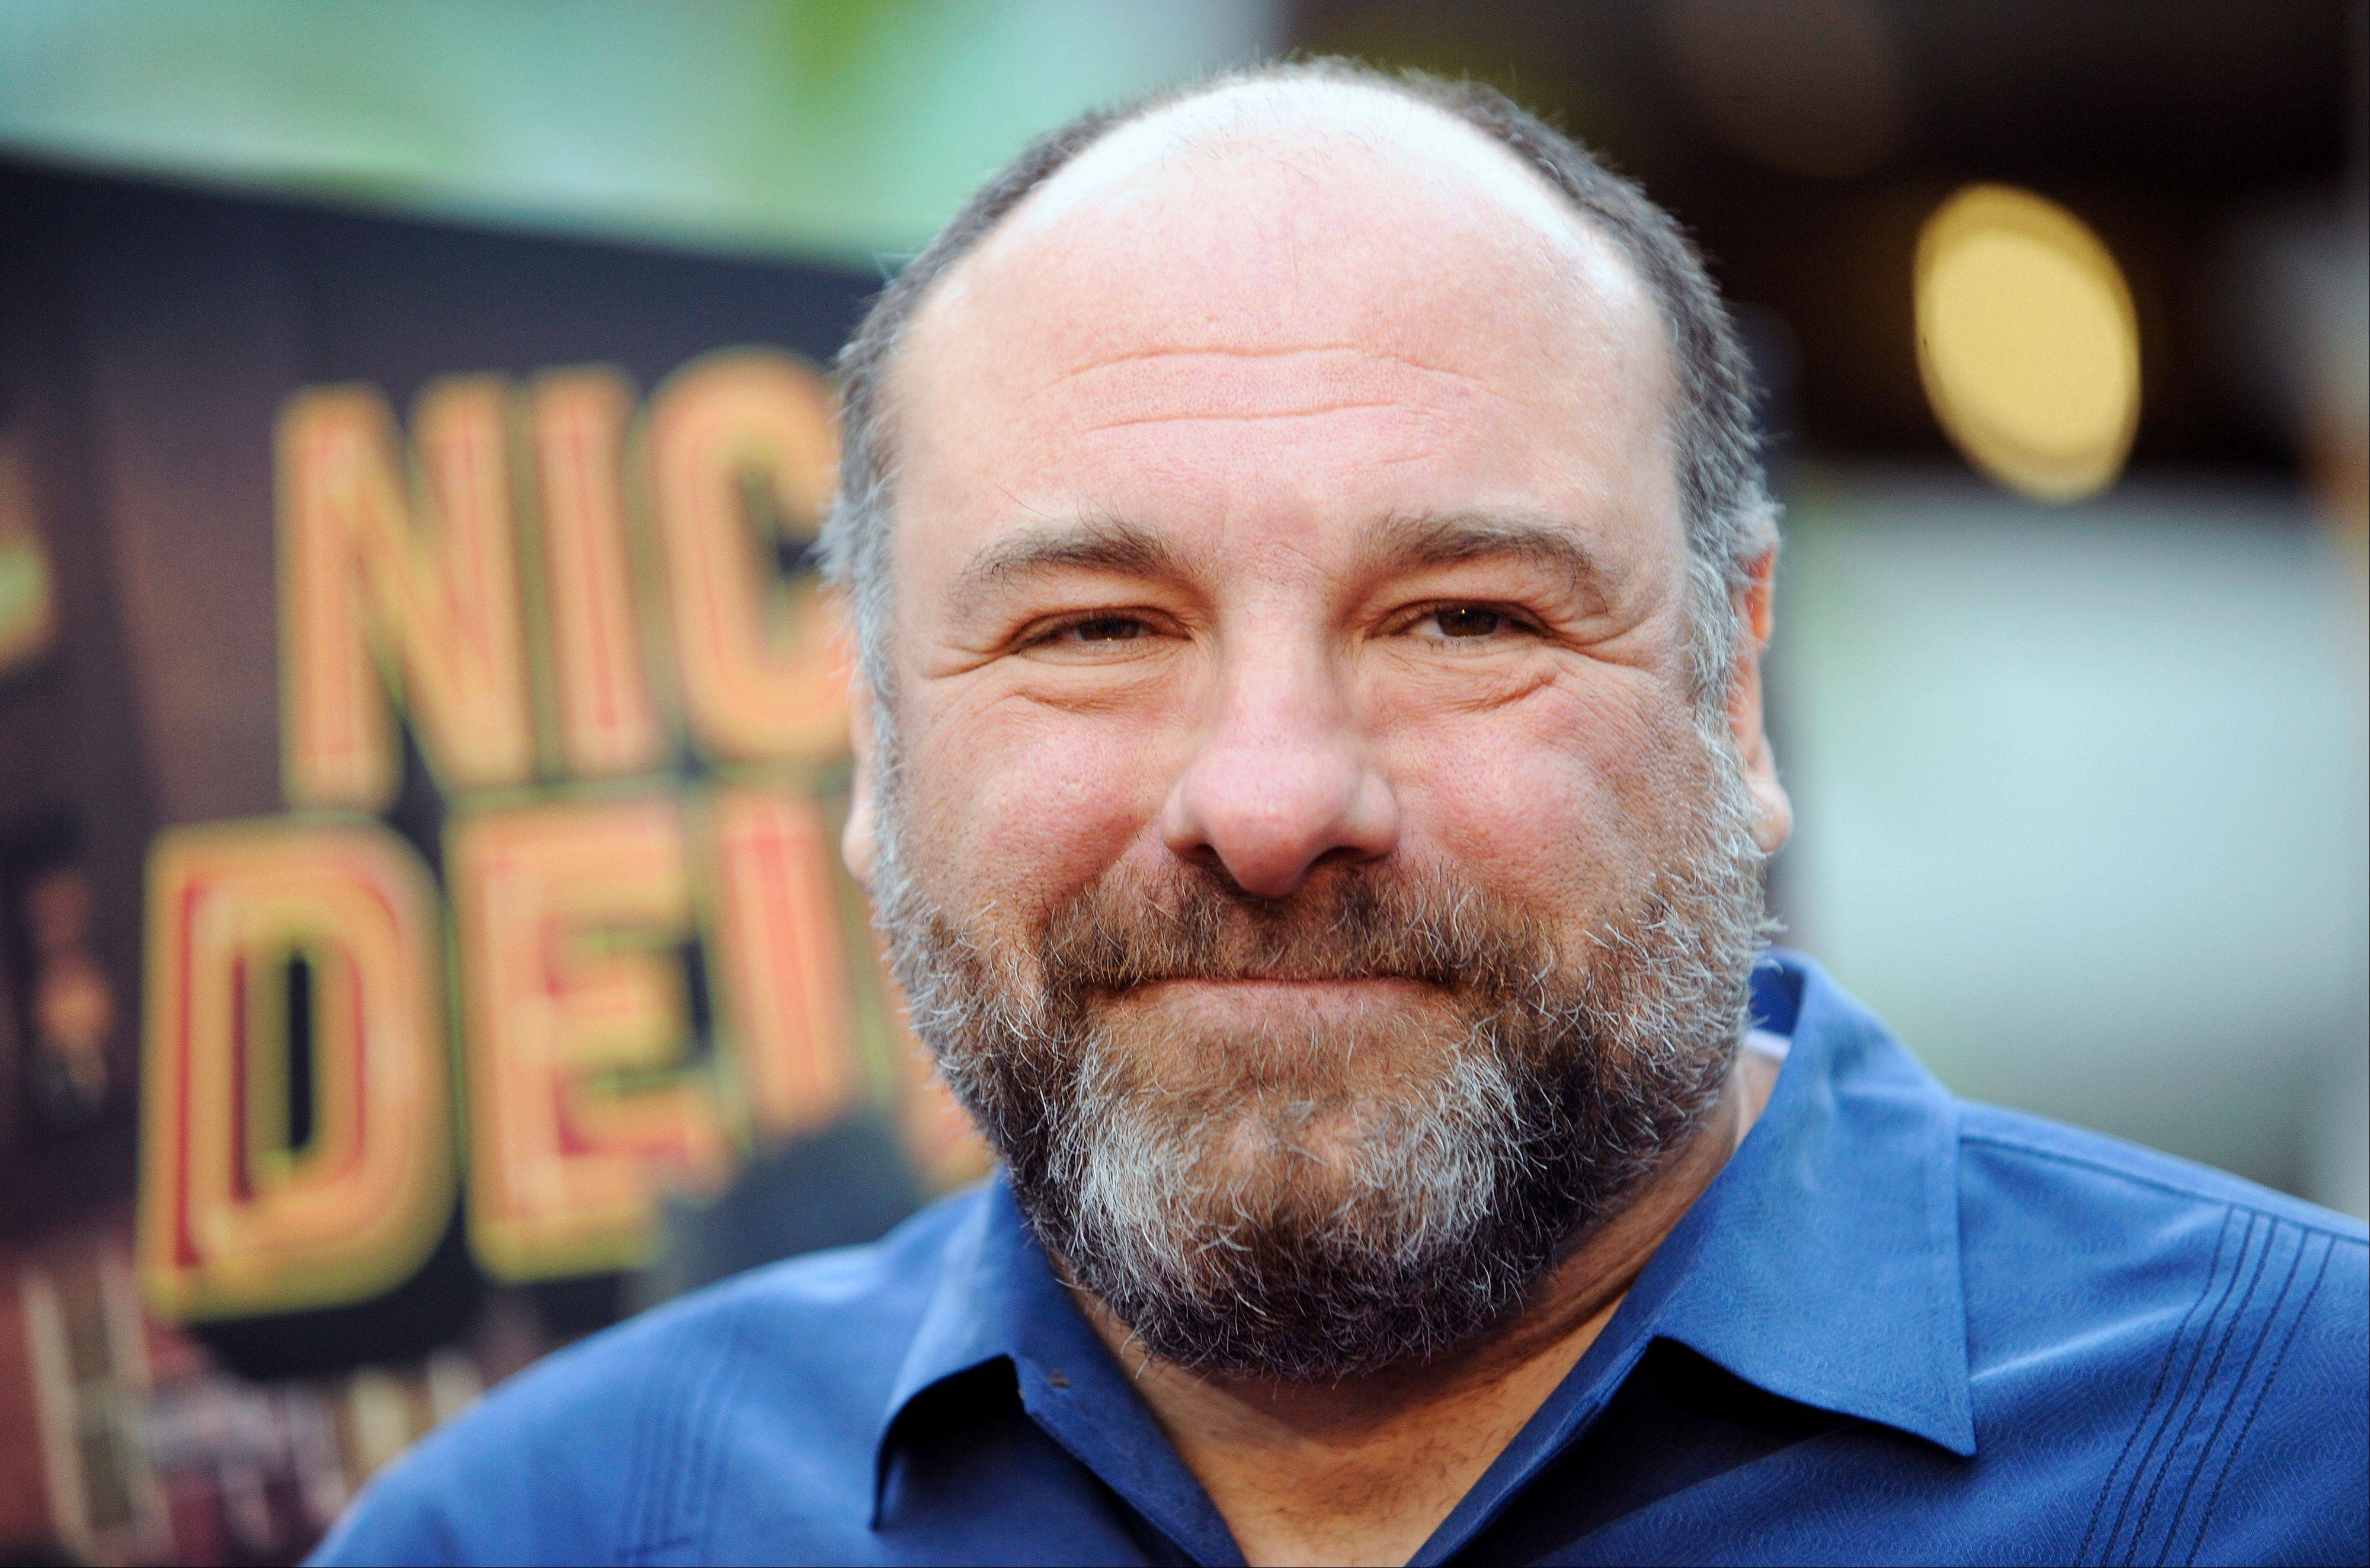 Actor James Gandolfini, who died Wednesday, had a number of projects in the works.